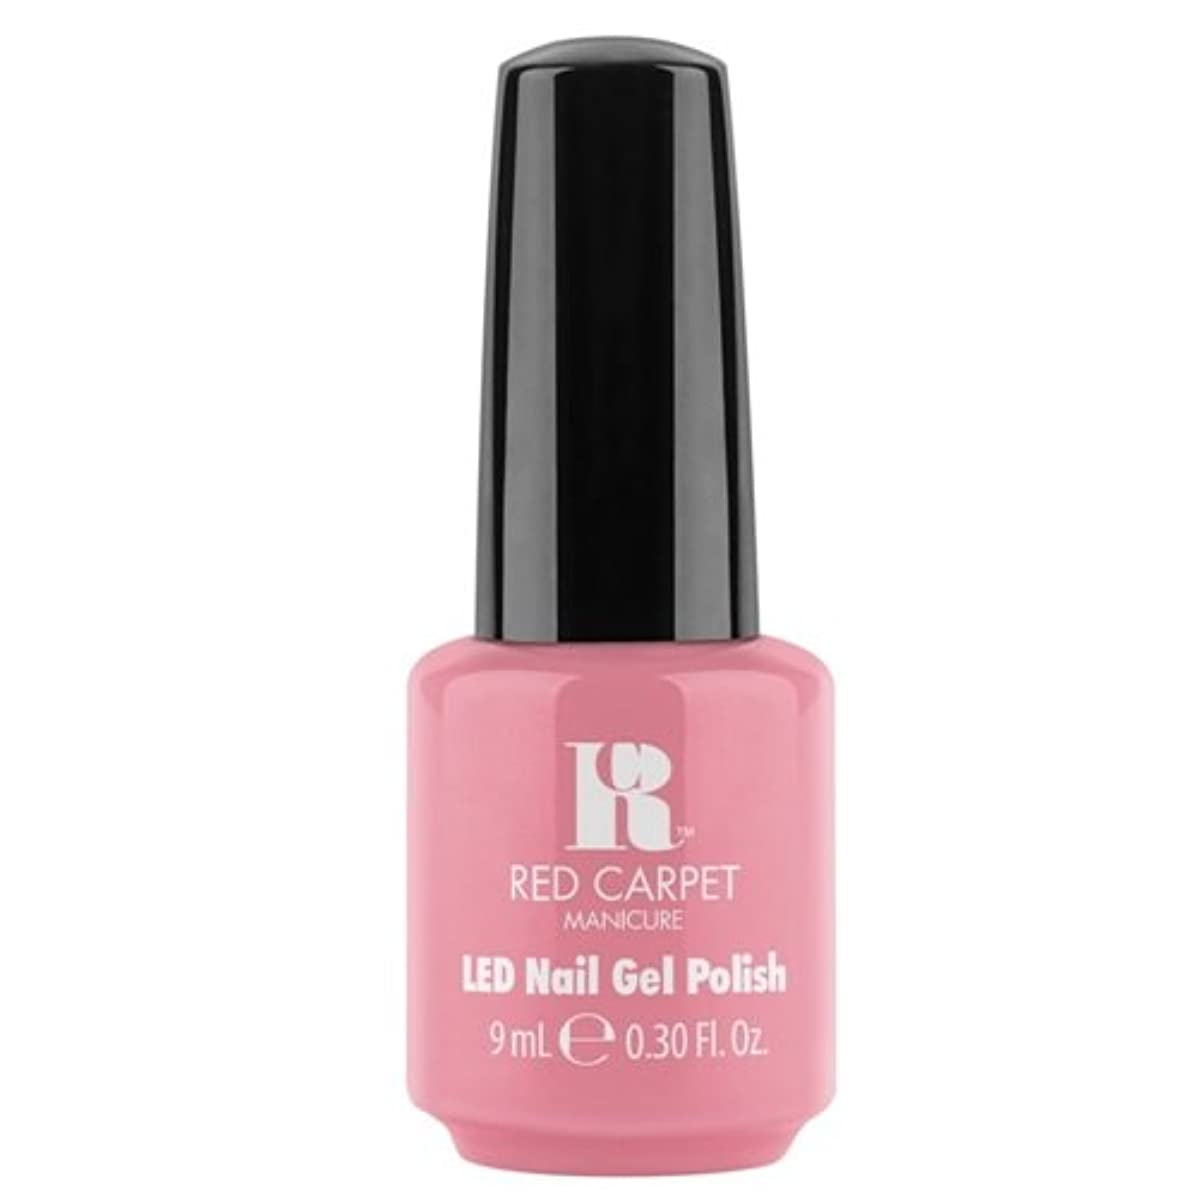 Red Carpet Manicure - LED Nail Gel Polish - Polished and Poised - 0.3oz / 9ml